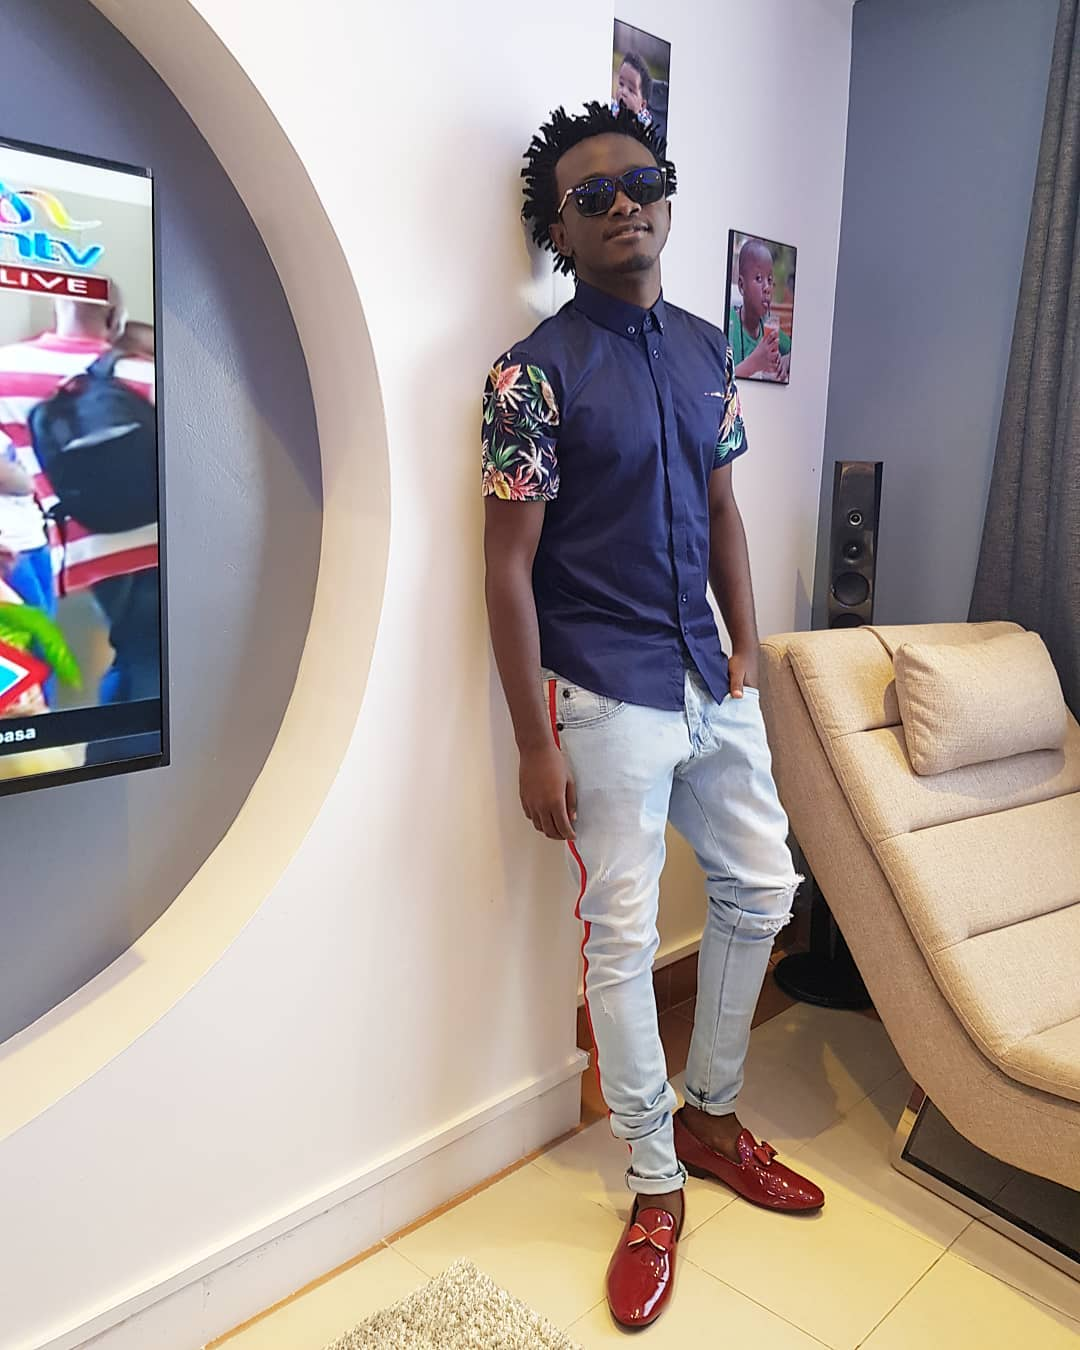 Bahati speaks about working with Diamond - Diamond unasikia? Bahati sets conditions for working with Wasafi CEO